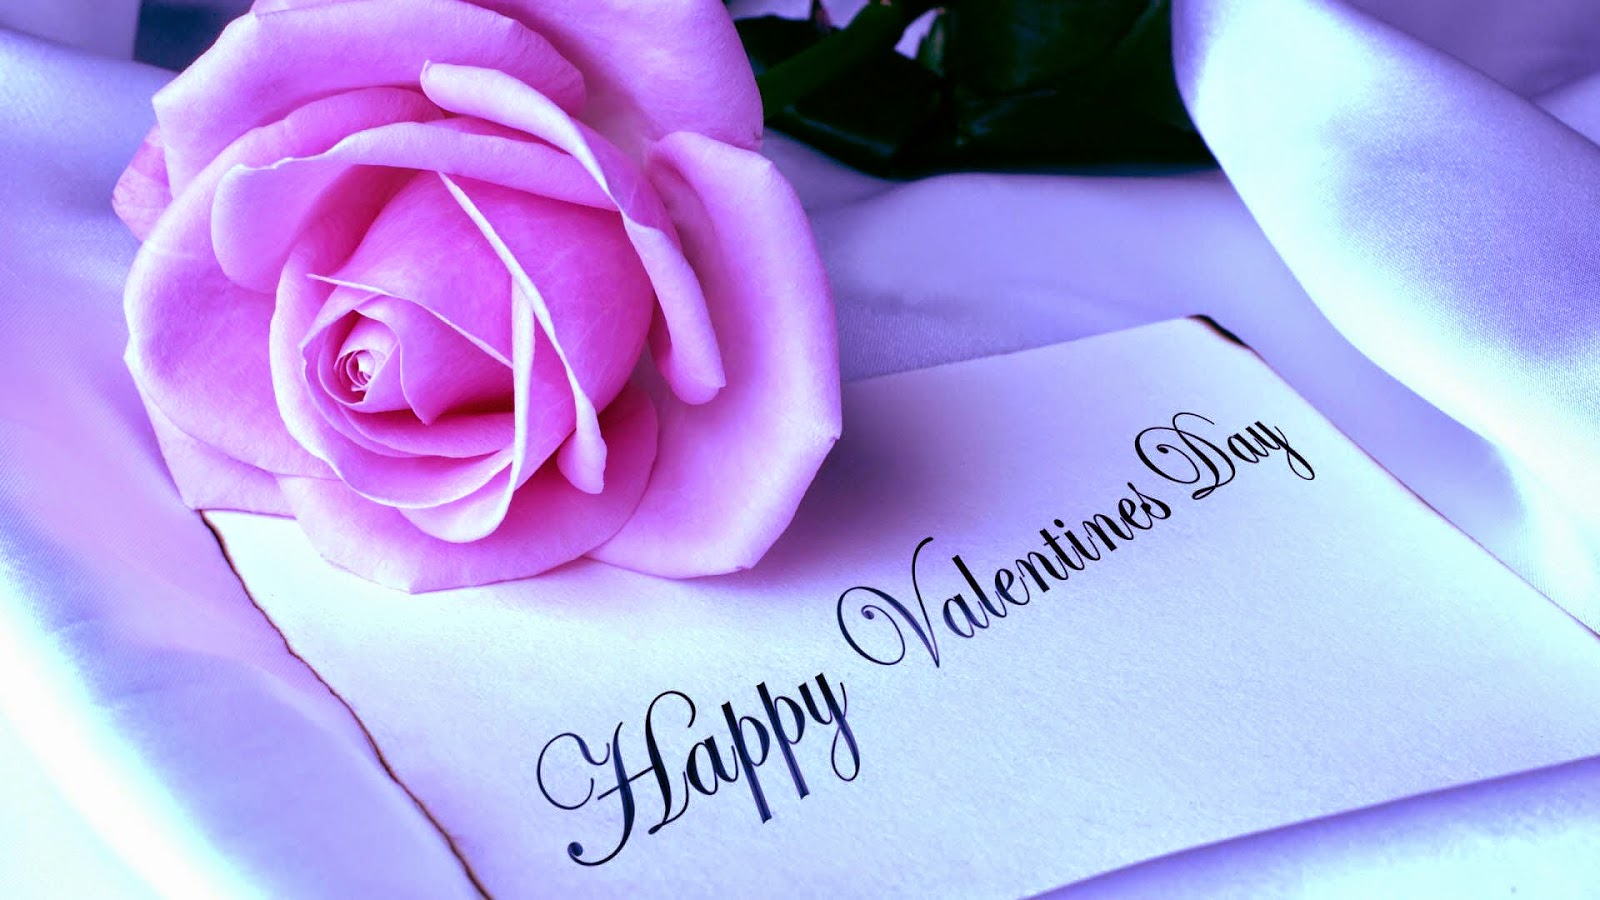 Valentine Happy Wallpaper Roses Pink 2015